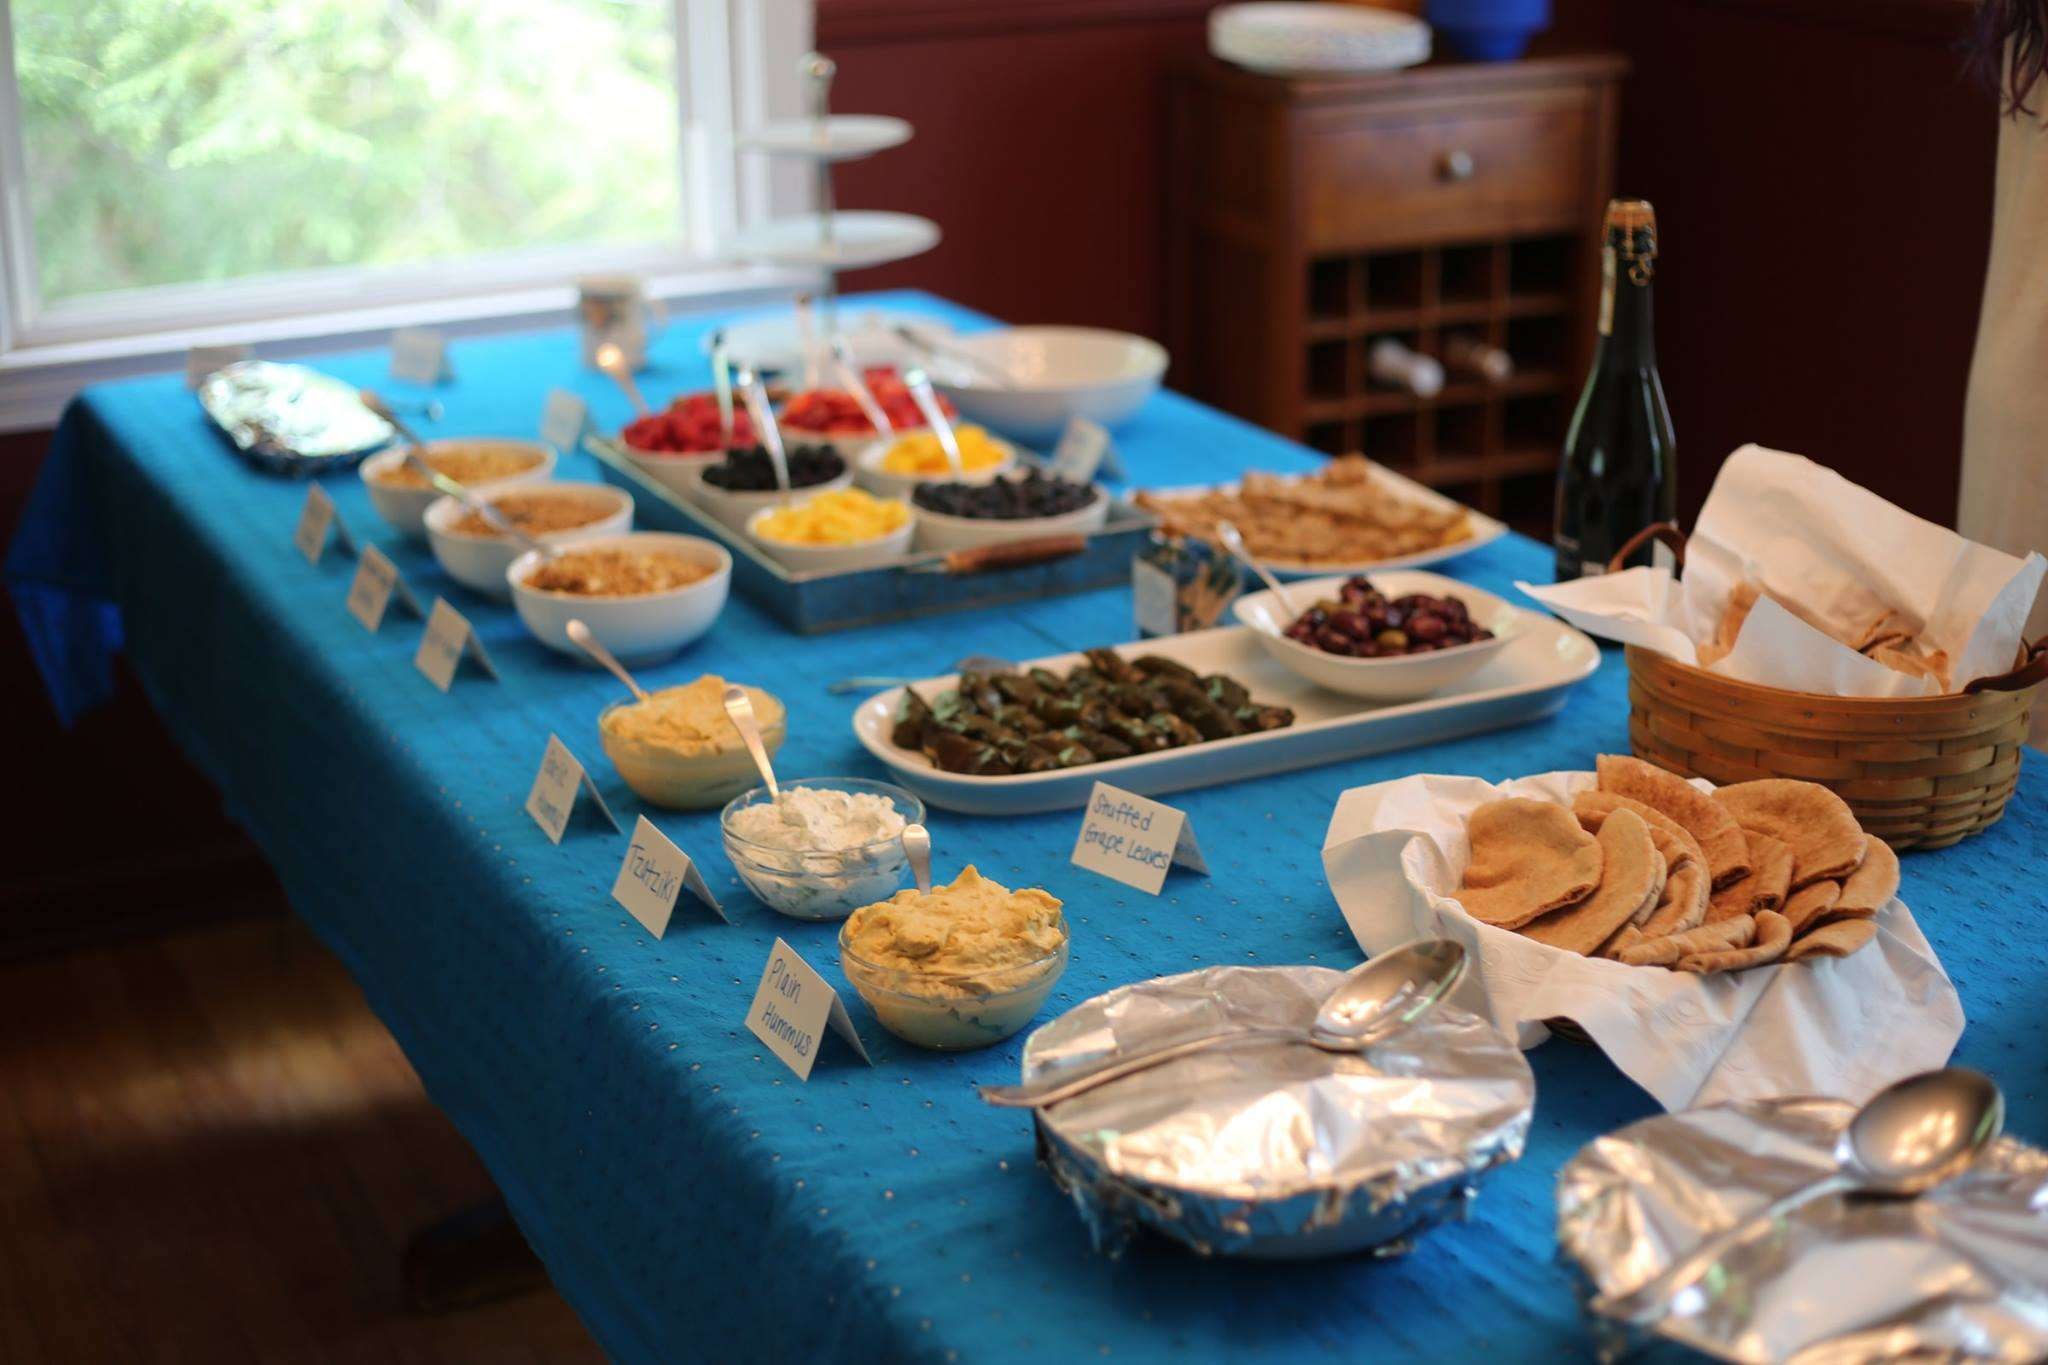 Our delicious Greek shower spread!